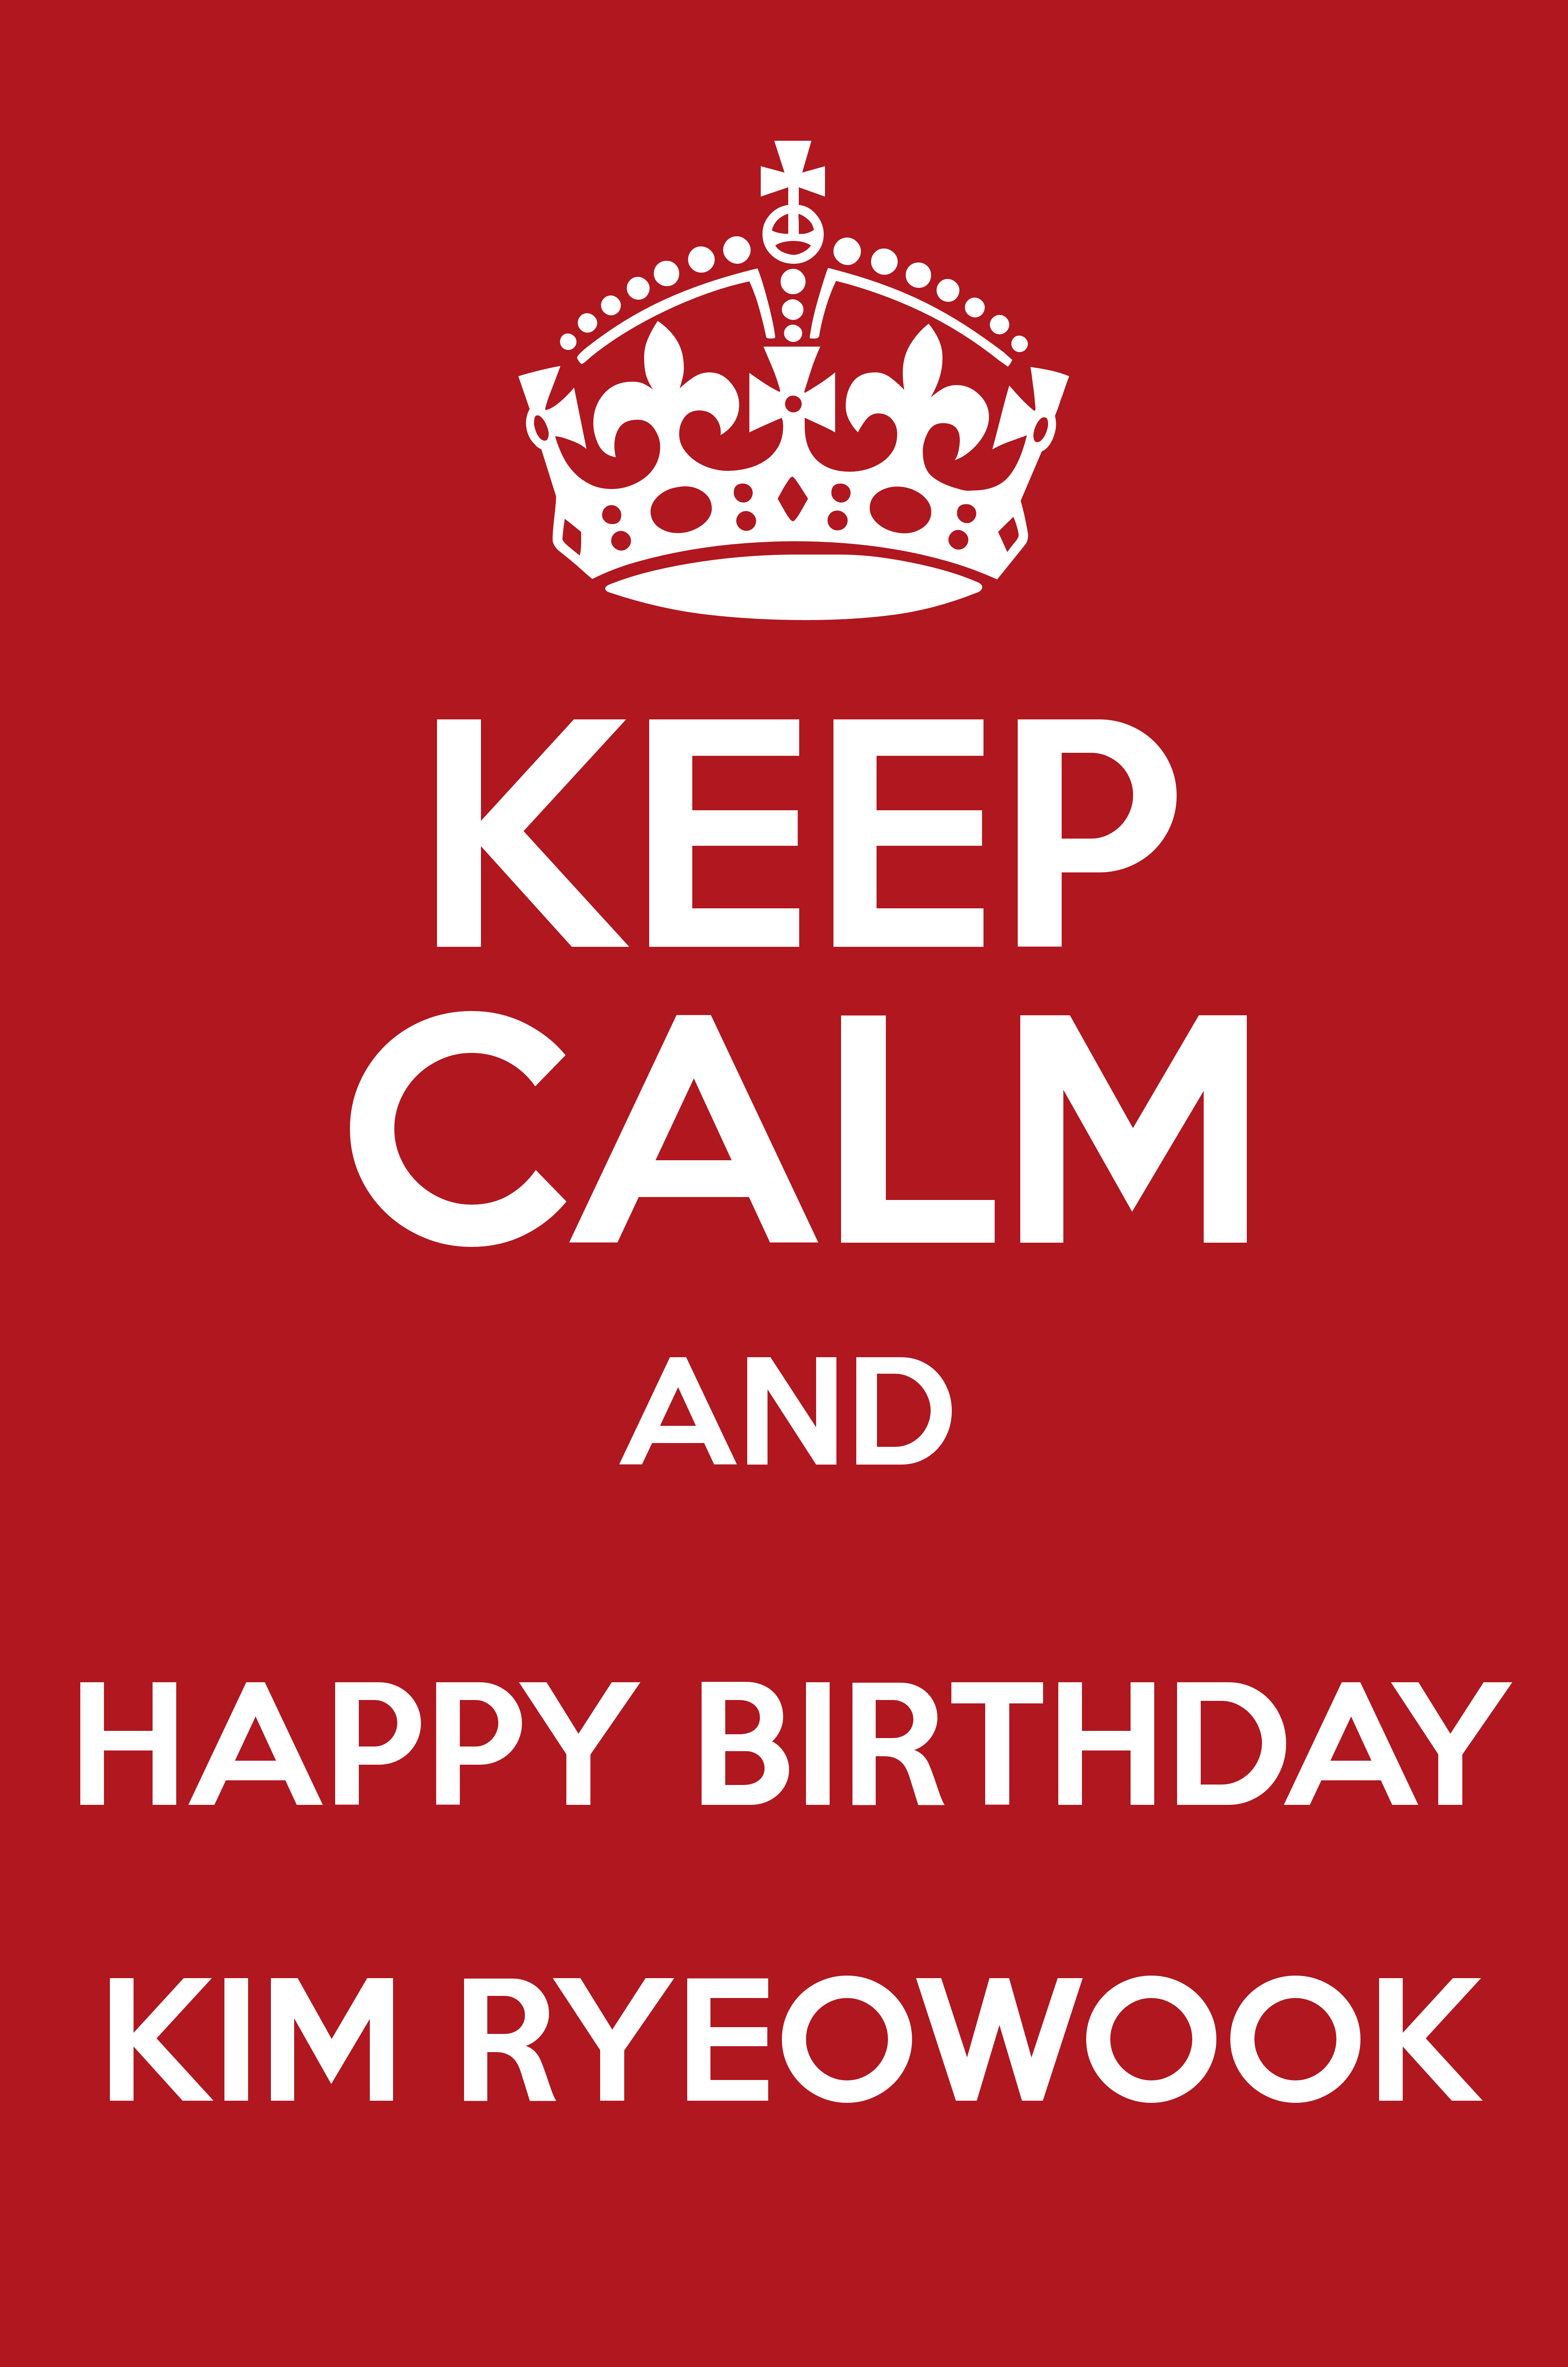 KEEP CALM AND HAPPY BIRTHDAY KIM RYEOWOOK Keep Calm and Posters